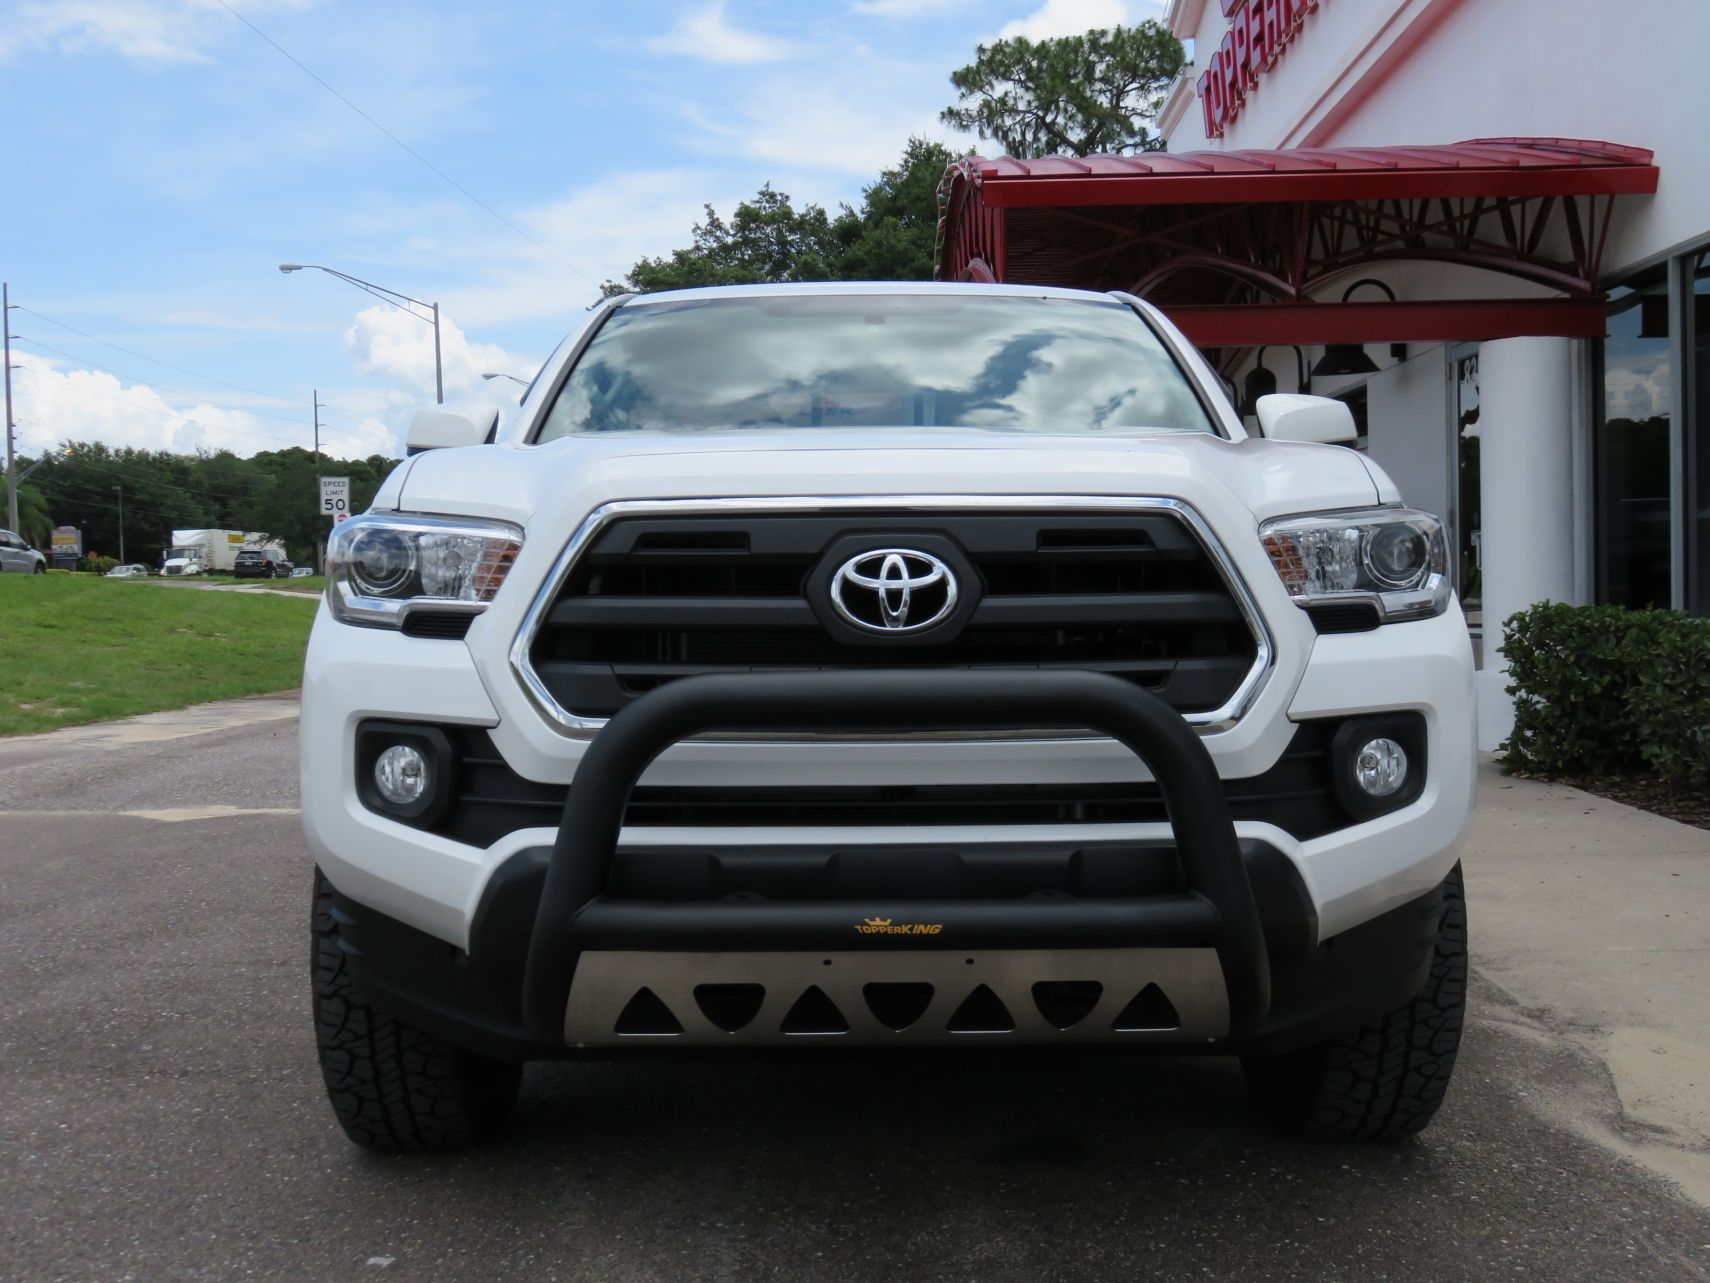 Toyota Tacoma Topper >> Bull Bars - TopperKING : TopperKING | Providing all of Tampa Bay with quality truck accessories